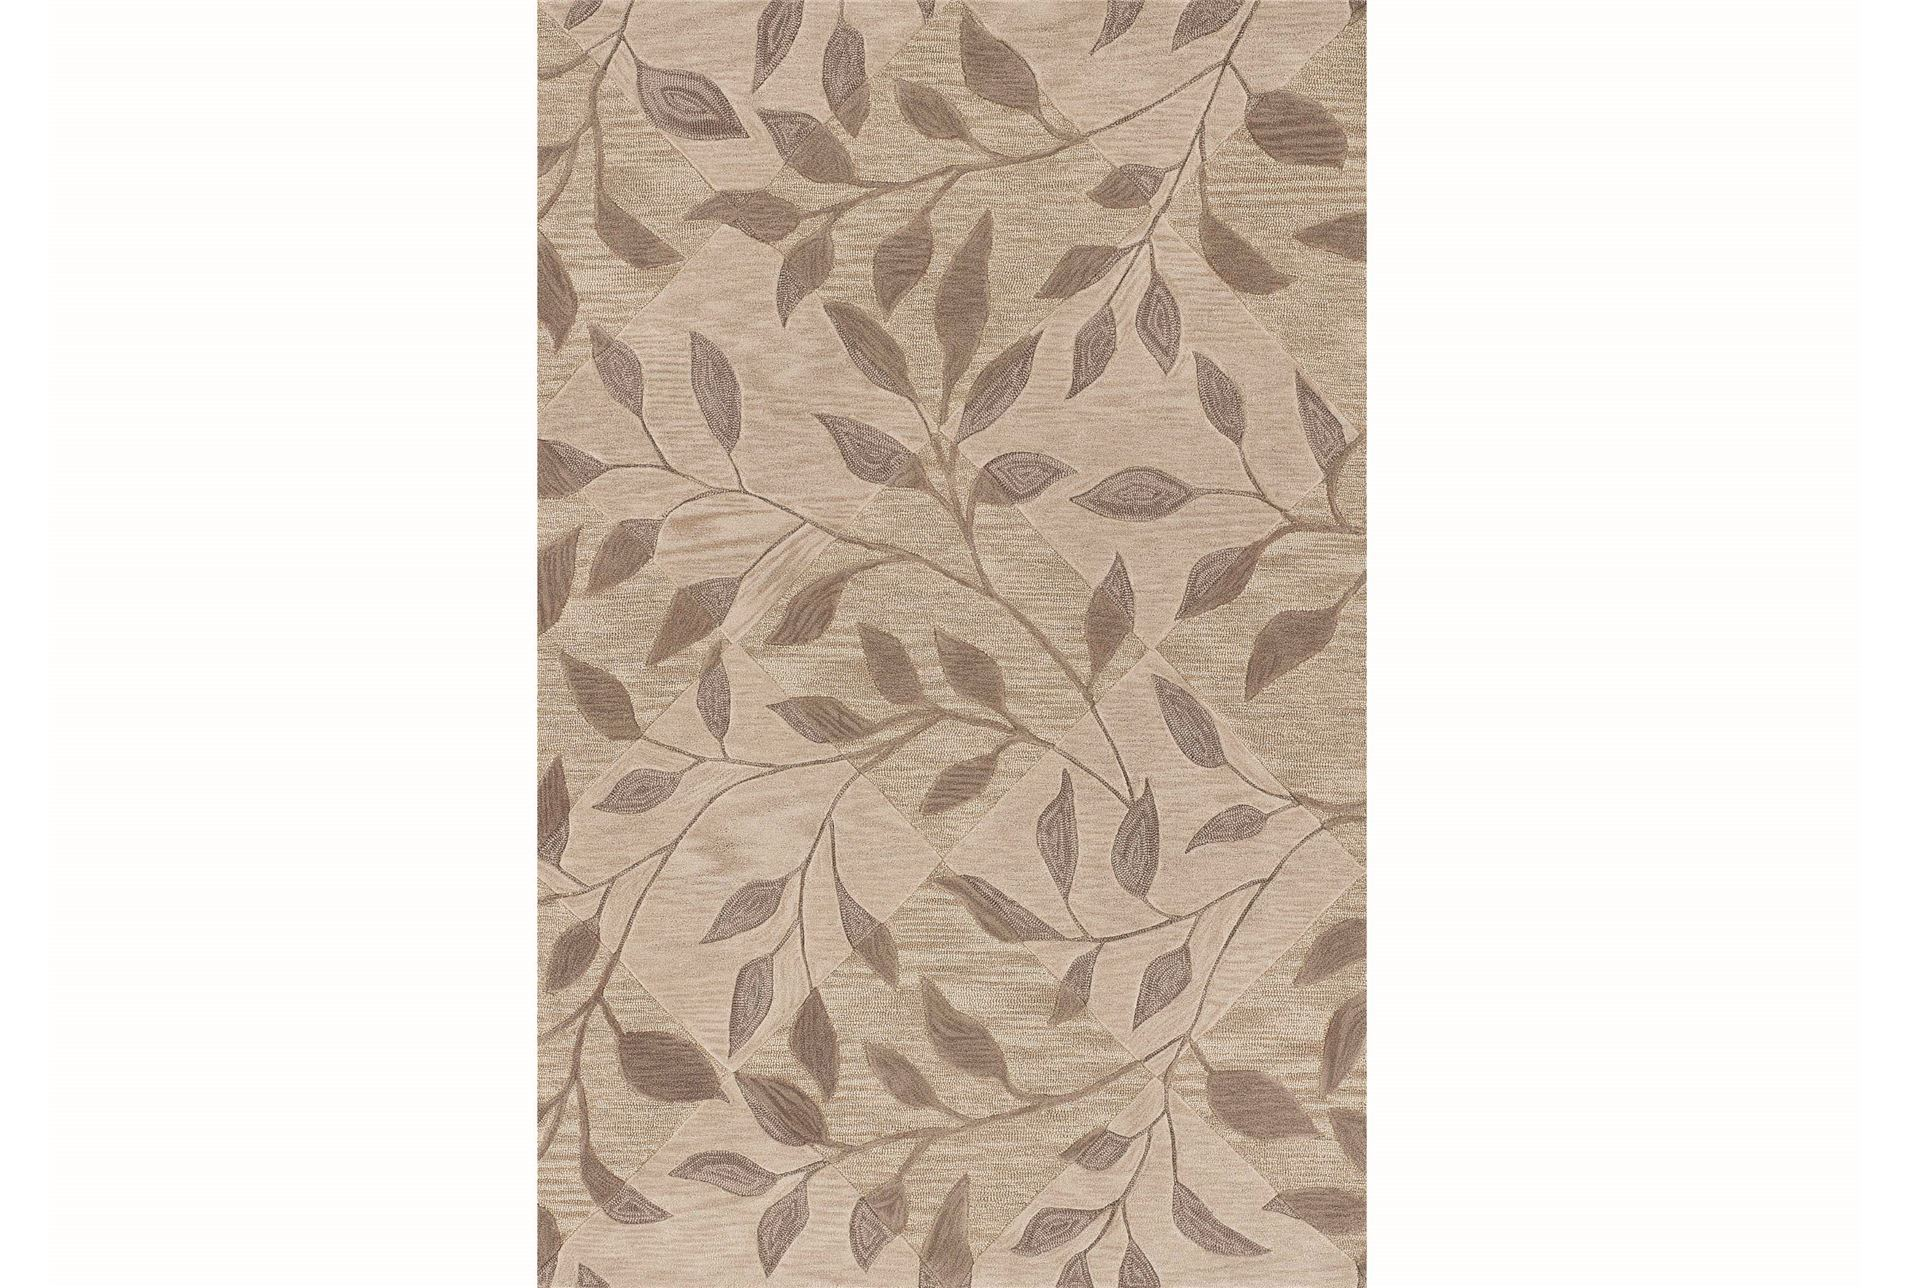 60x93 rug studio ivory living spaces for Living spaces rugs